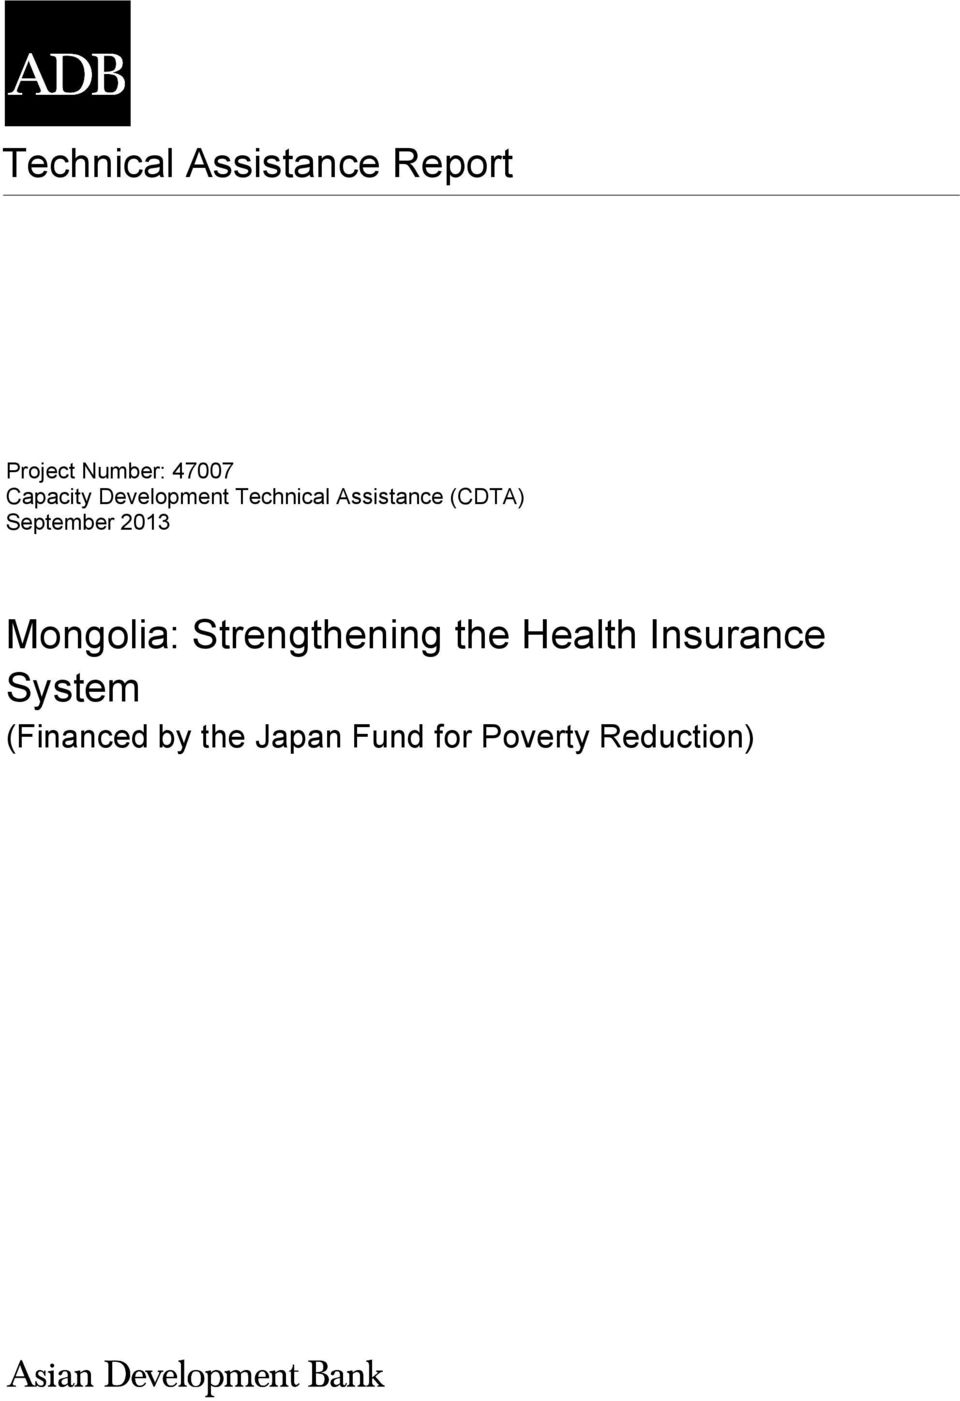 Mongolia: Strengthening the Health Insurance System - PDF